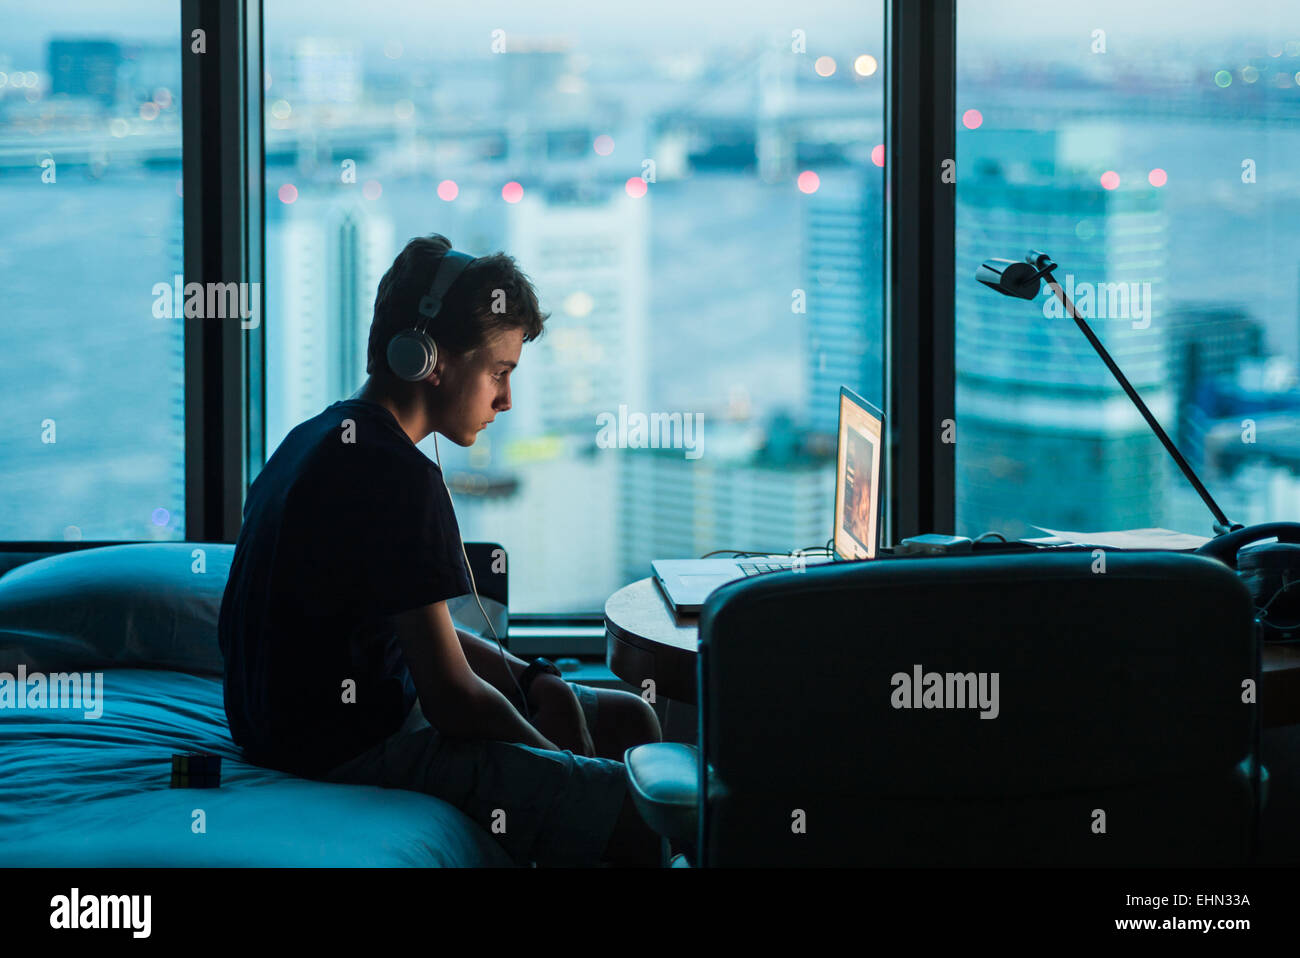 Teenage boy using a laptop. - Stock Image